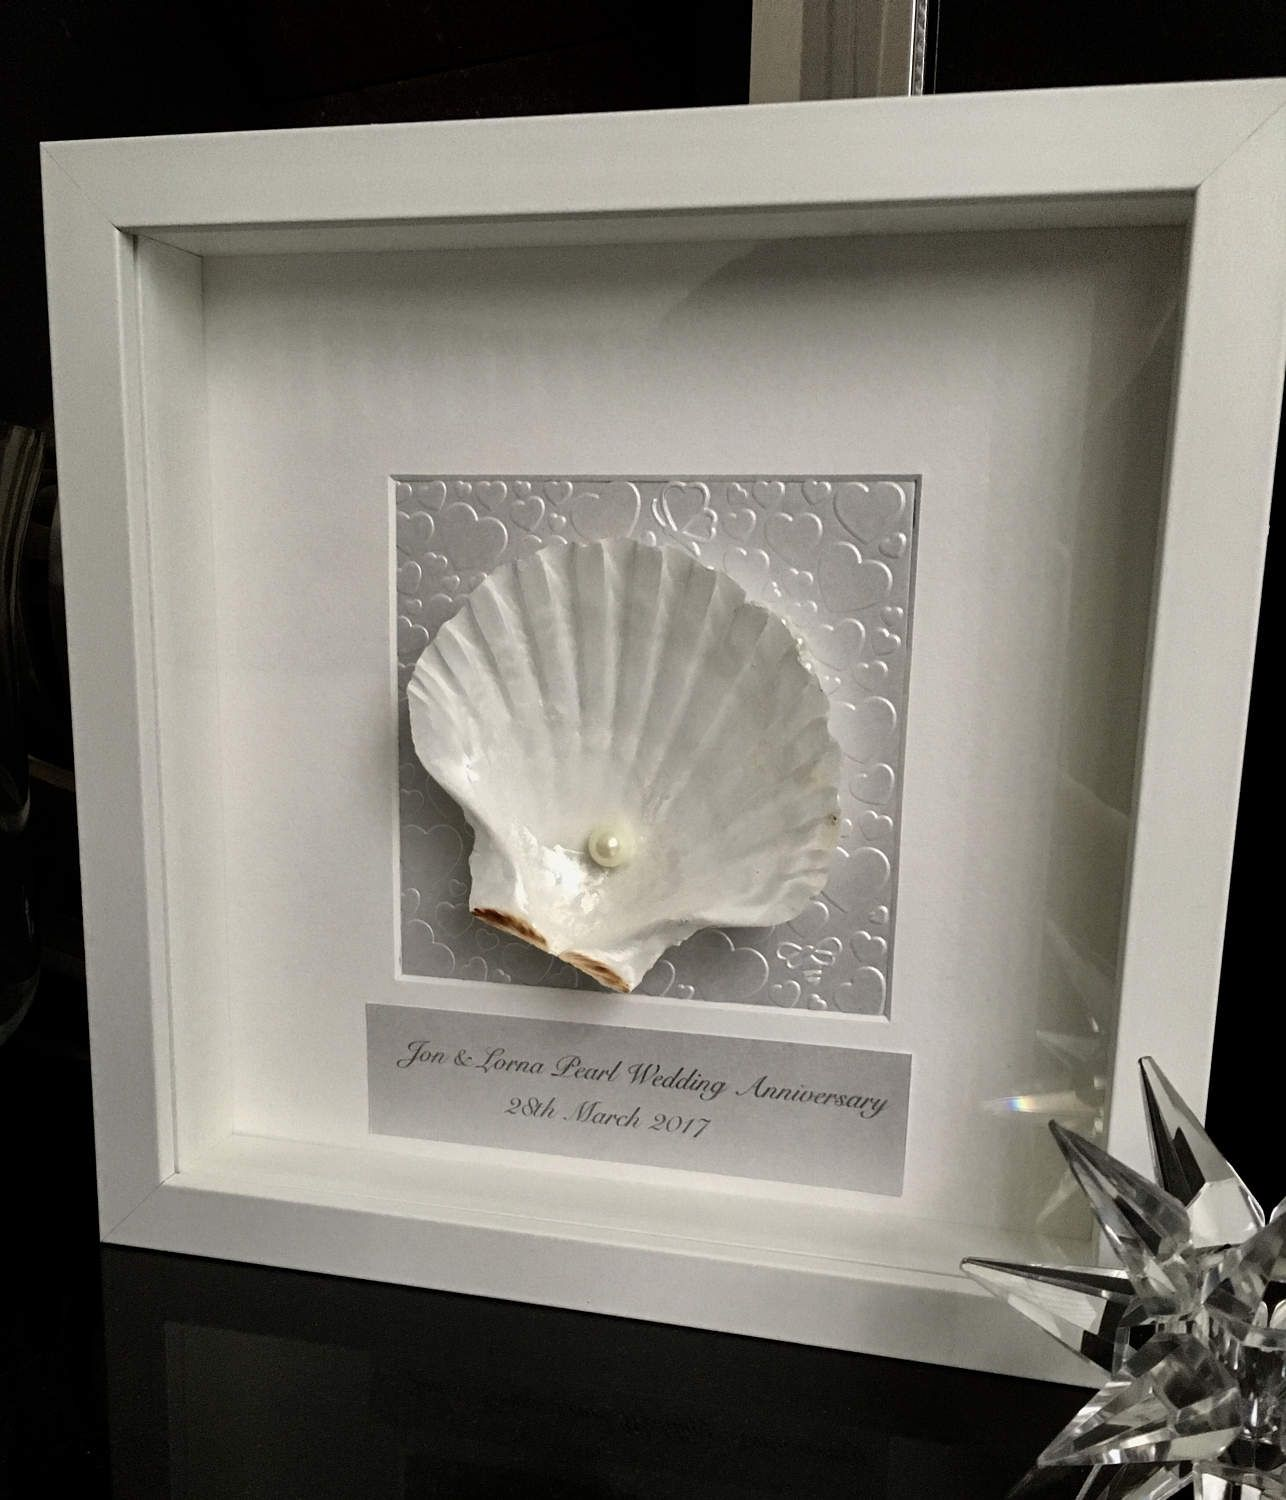 Gift Ideas For 30th Wedding Anniversary: 30th Wedding Anniversary Gift, Shell Art Anniversary Gift